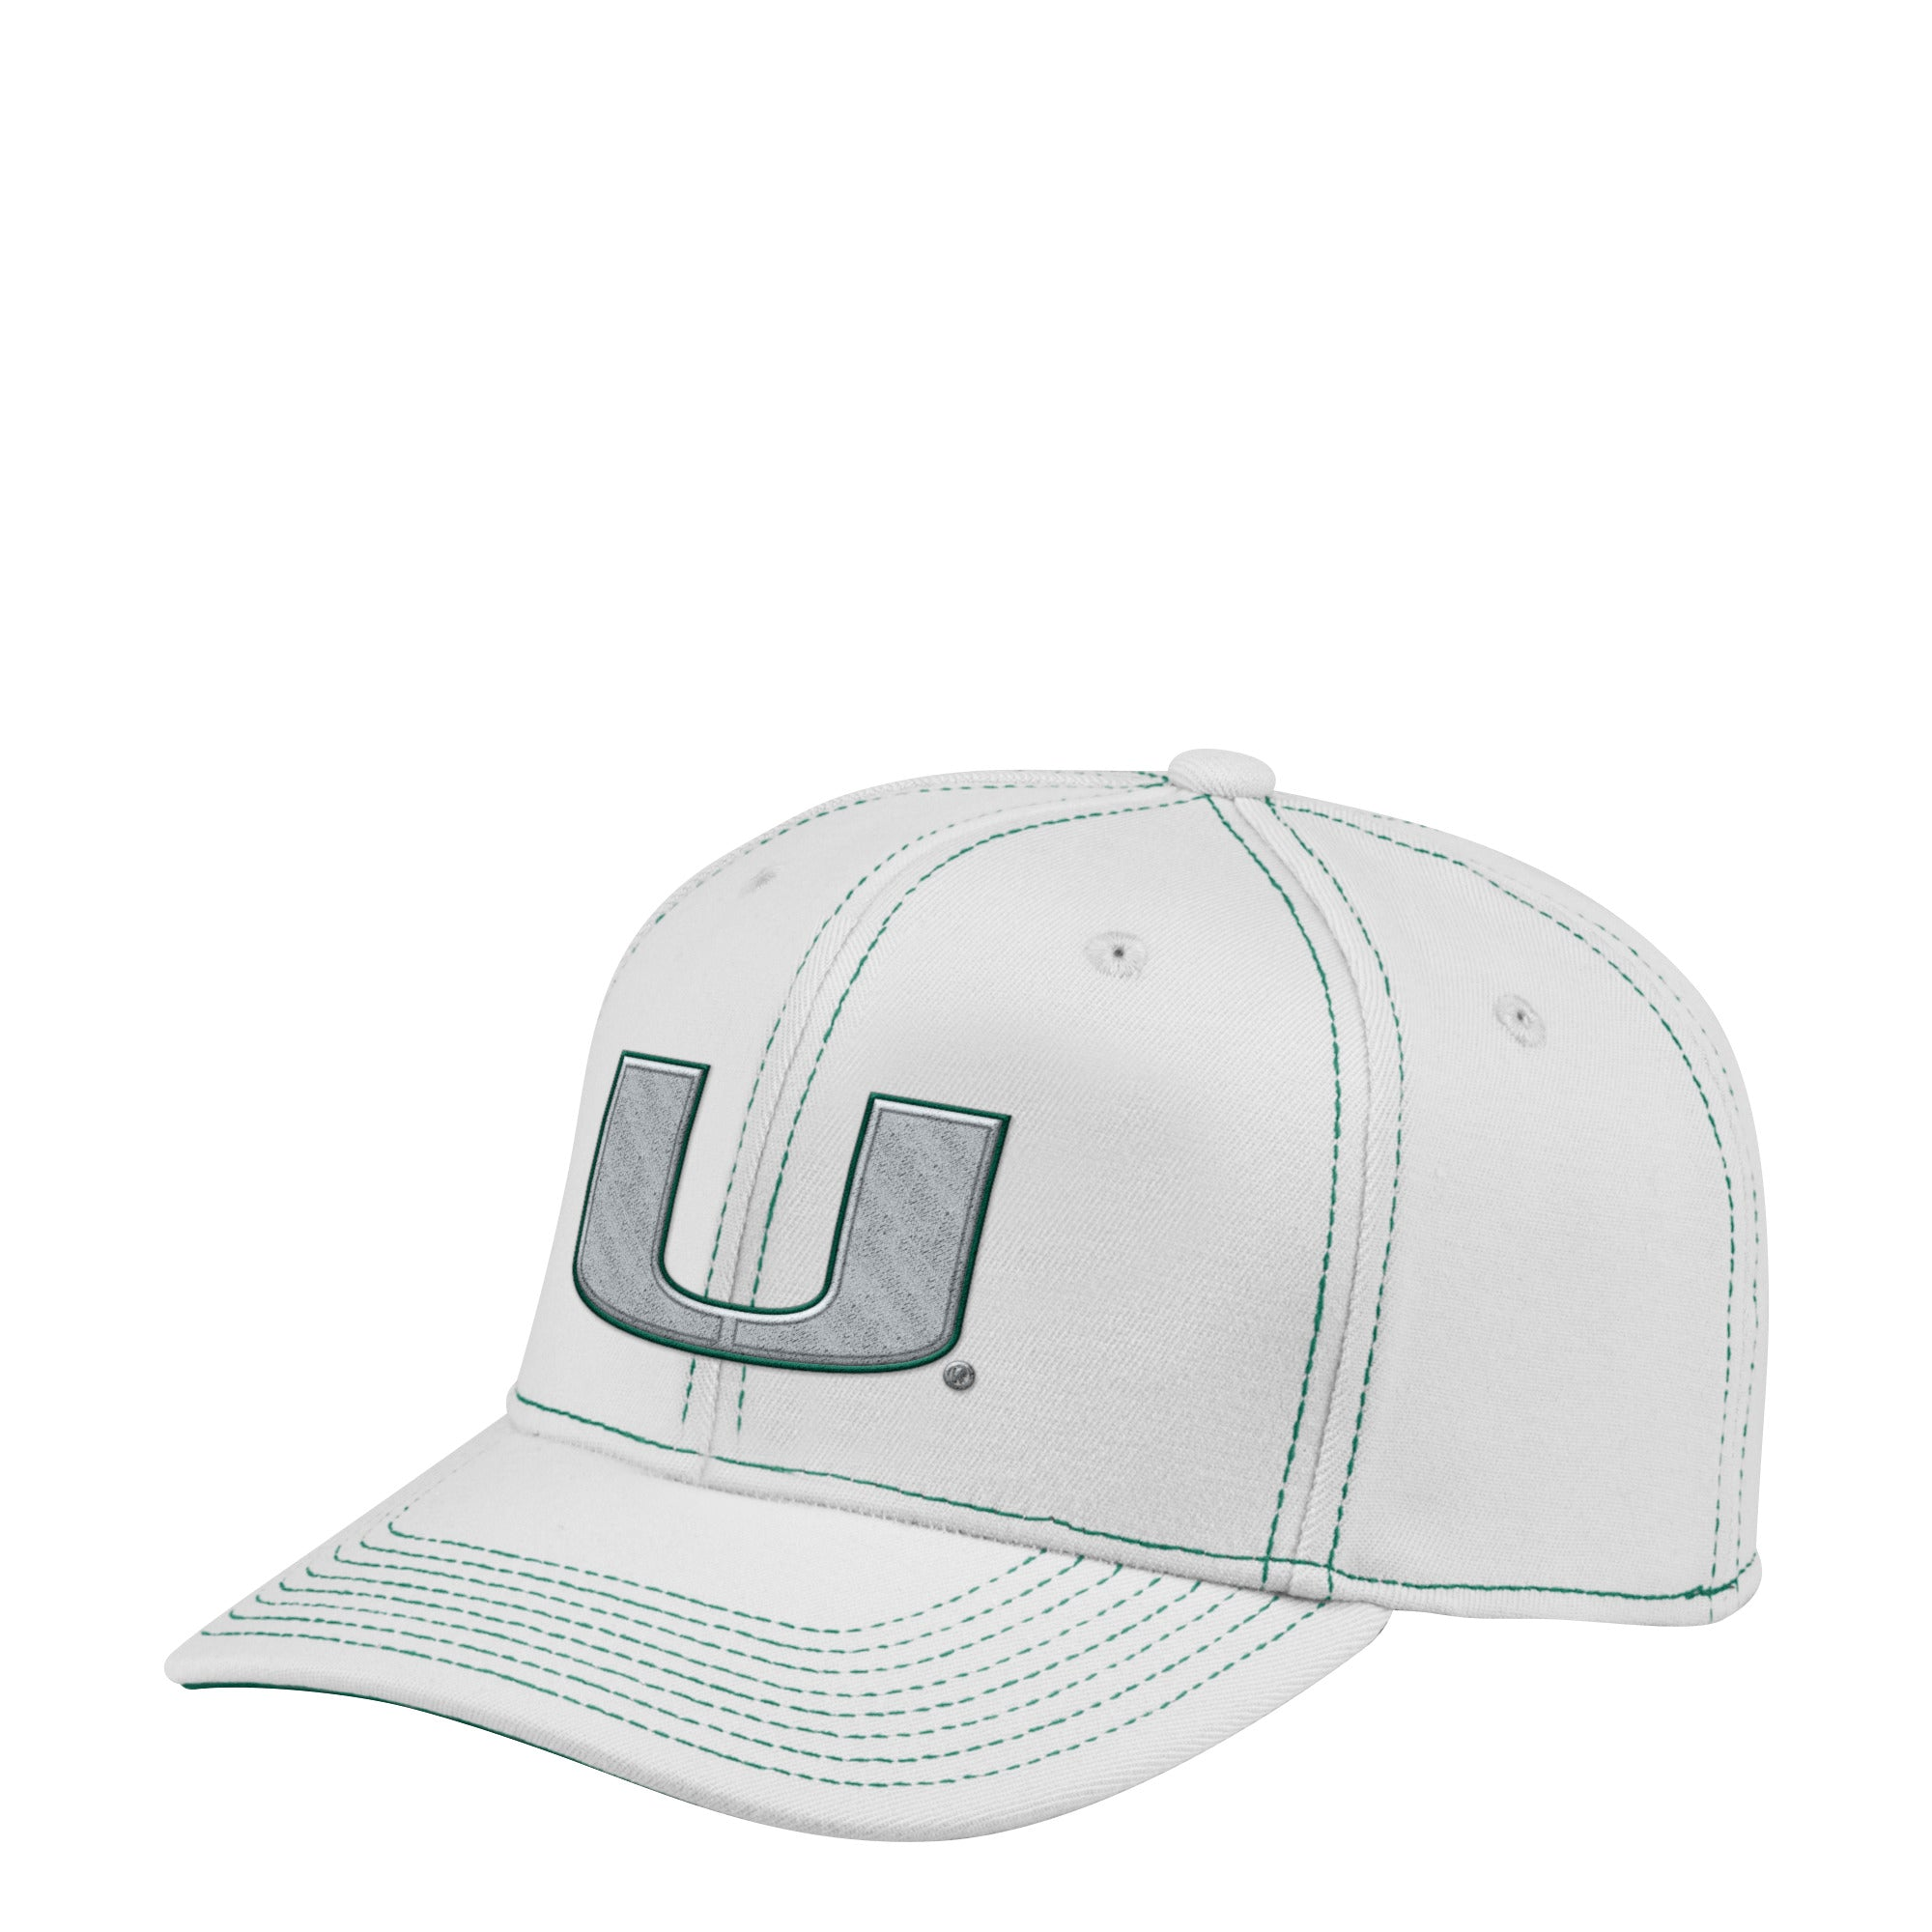 5a7be5cf1abce Miami Hurricanes adidas 2018 Structured Flex Team Pop Colors Hat - Gre –  CanesWear at Miami FanWear